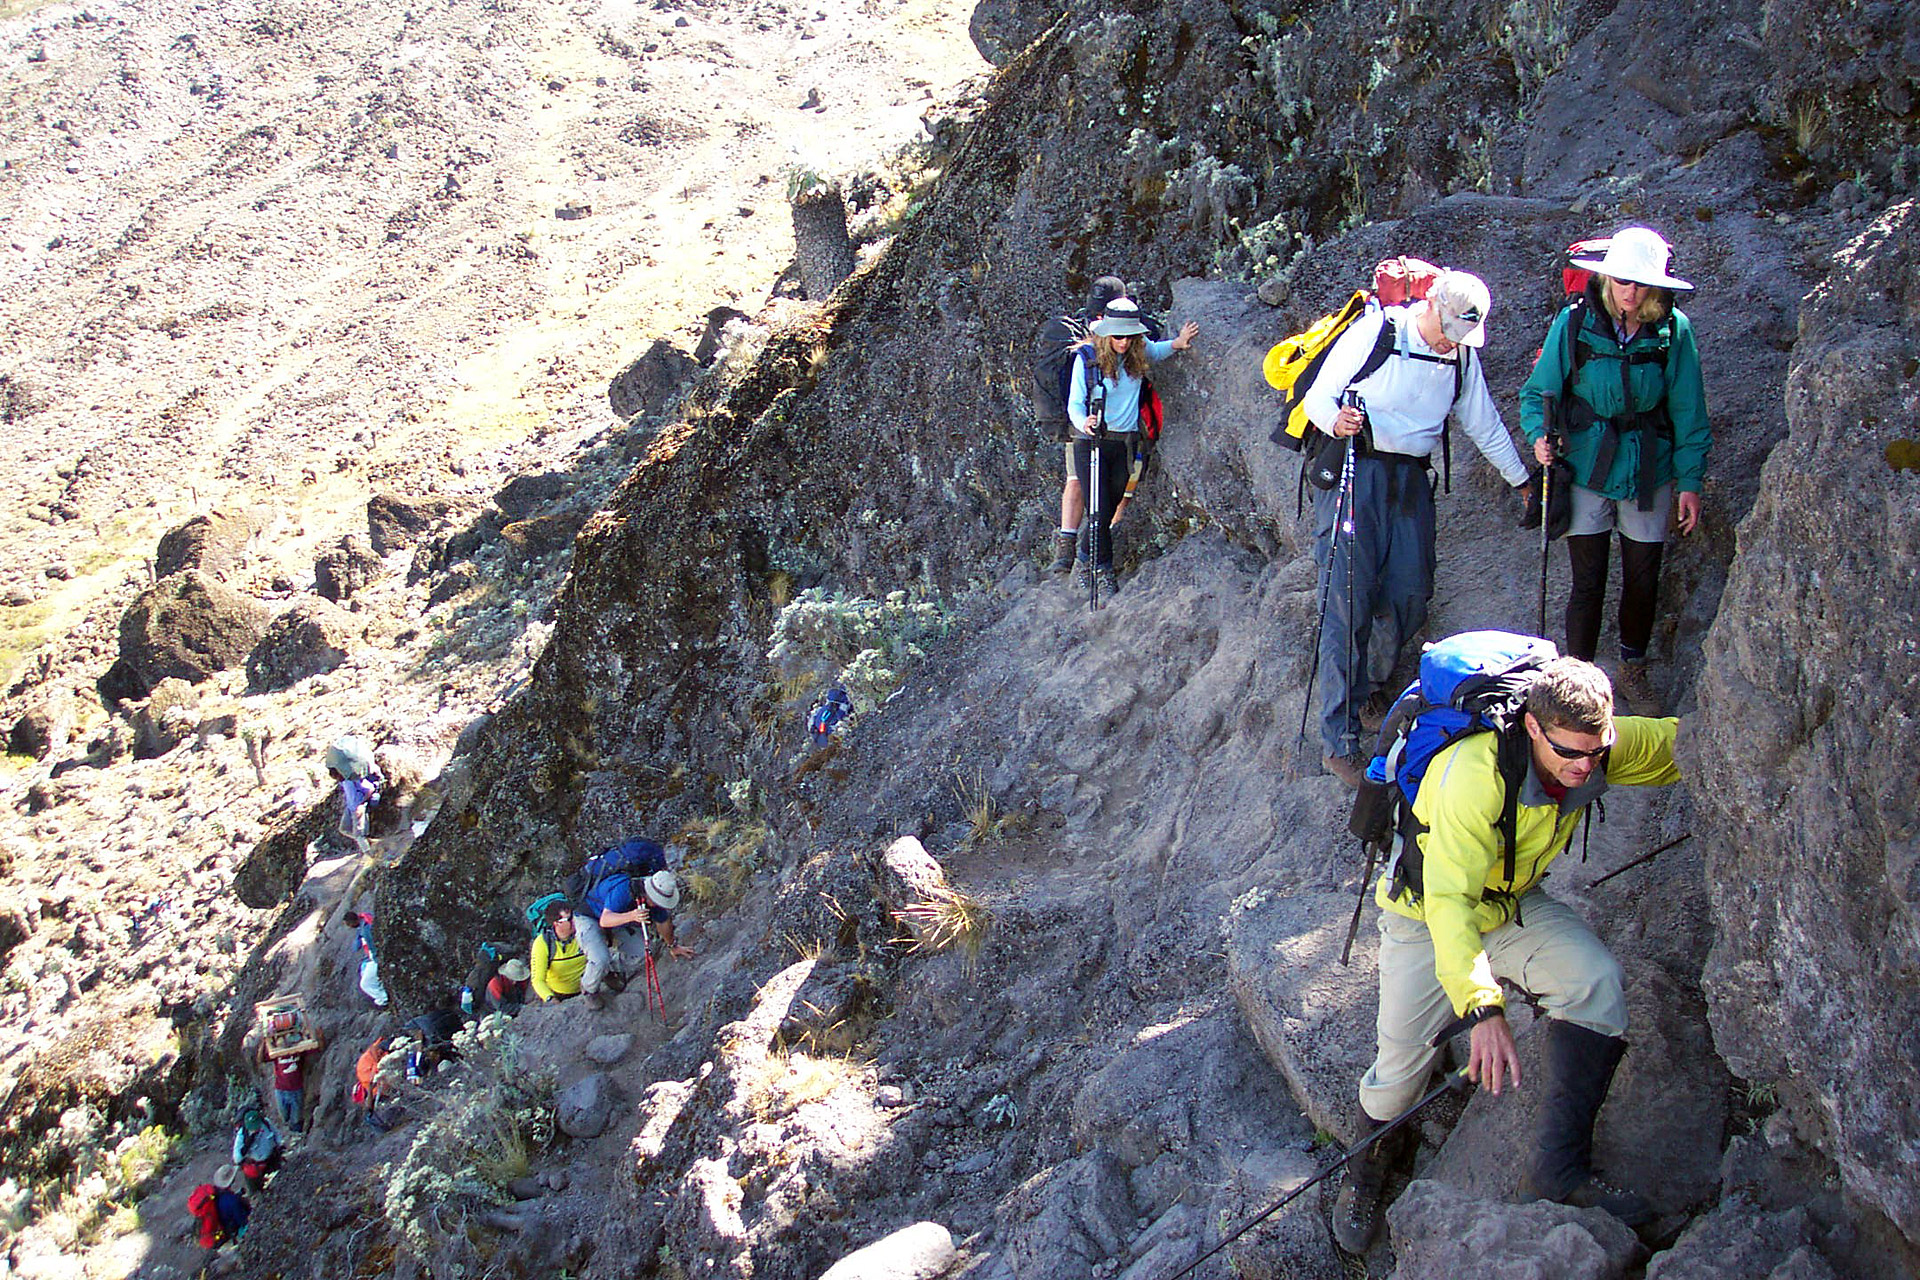 The steep spot on the ascent of the Barranco Wall (Eric Simonson)